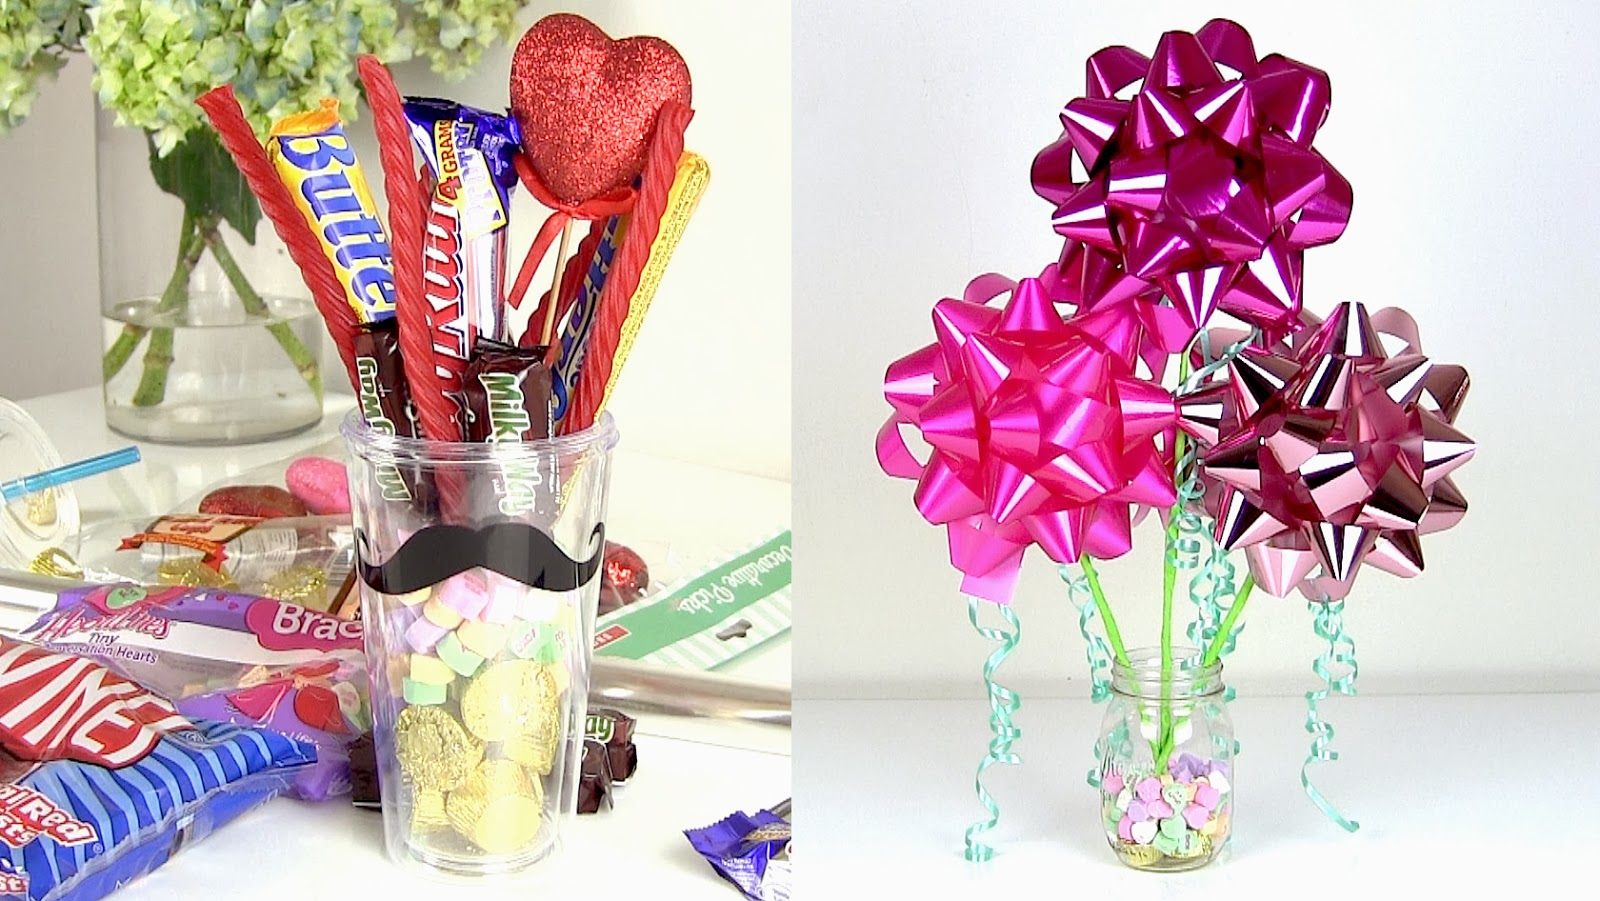 Urbanog blog last minute diy valentines candy bouquets for him last minute diy valentines candy bouquets for him and her solutioingenieria Gallery